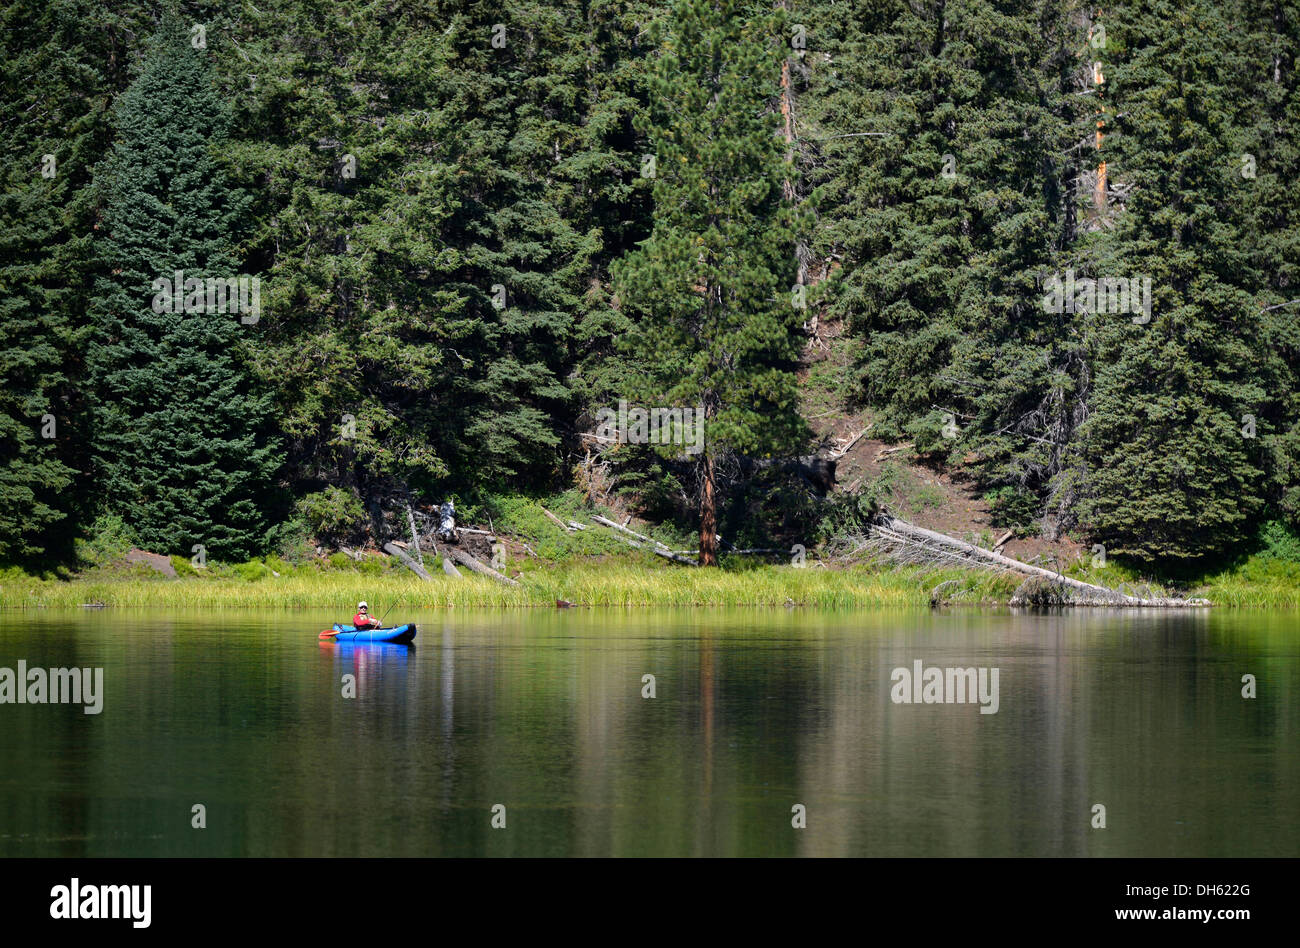 Fishermen in a canoe, Posey Lake, Dixie National Forest, Utah, Southwestern USA, USA - Stock Image